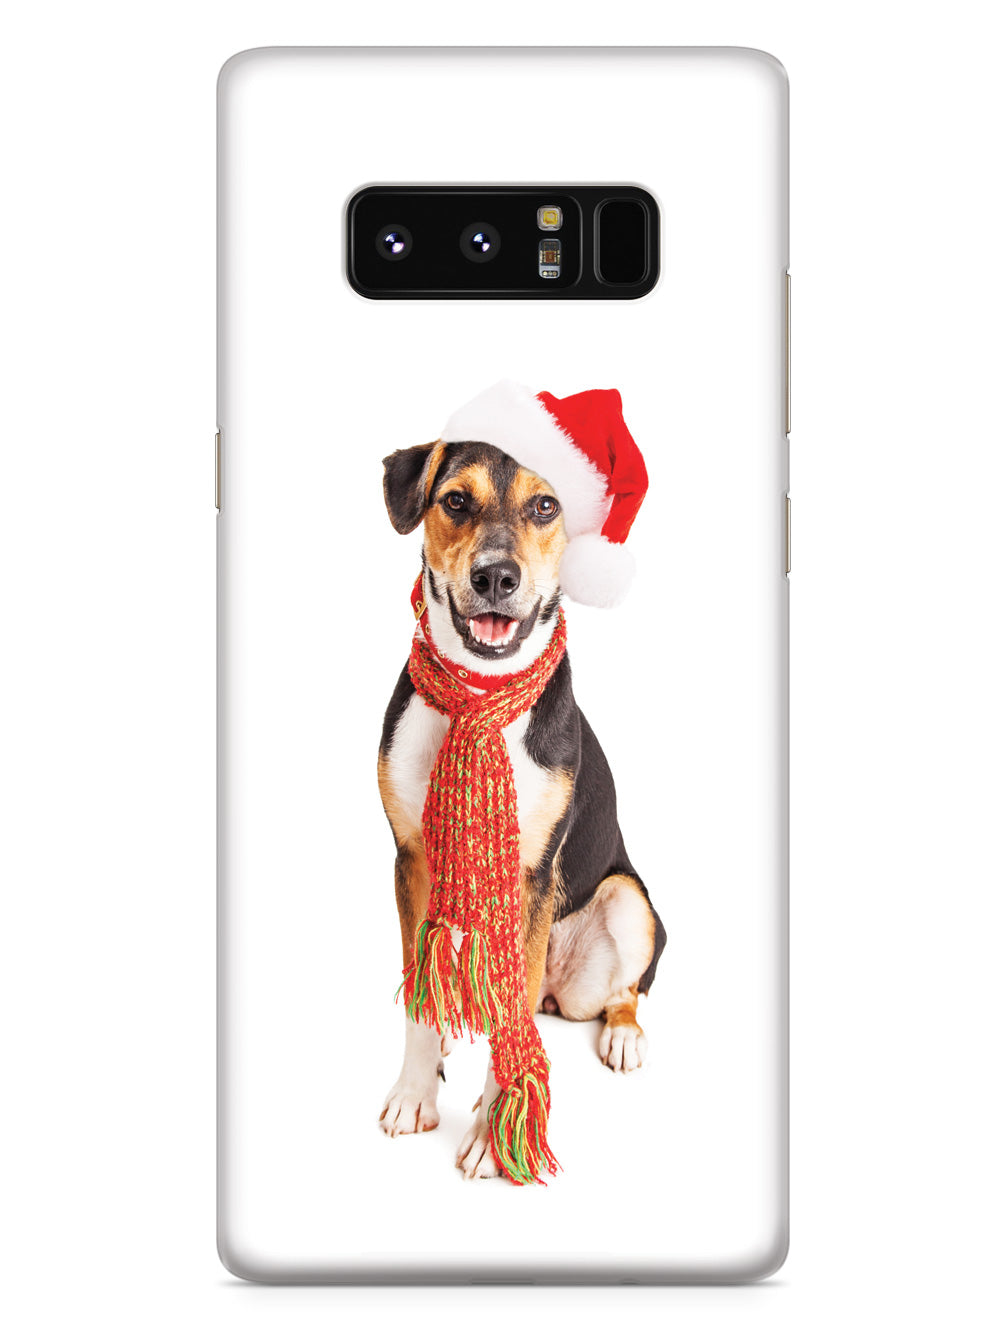 Merry Beagle - Christmas Case